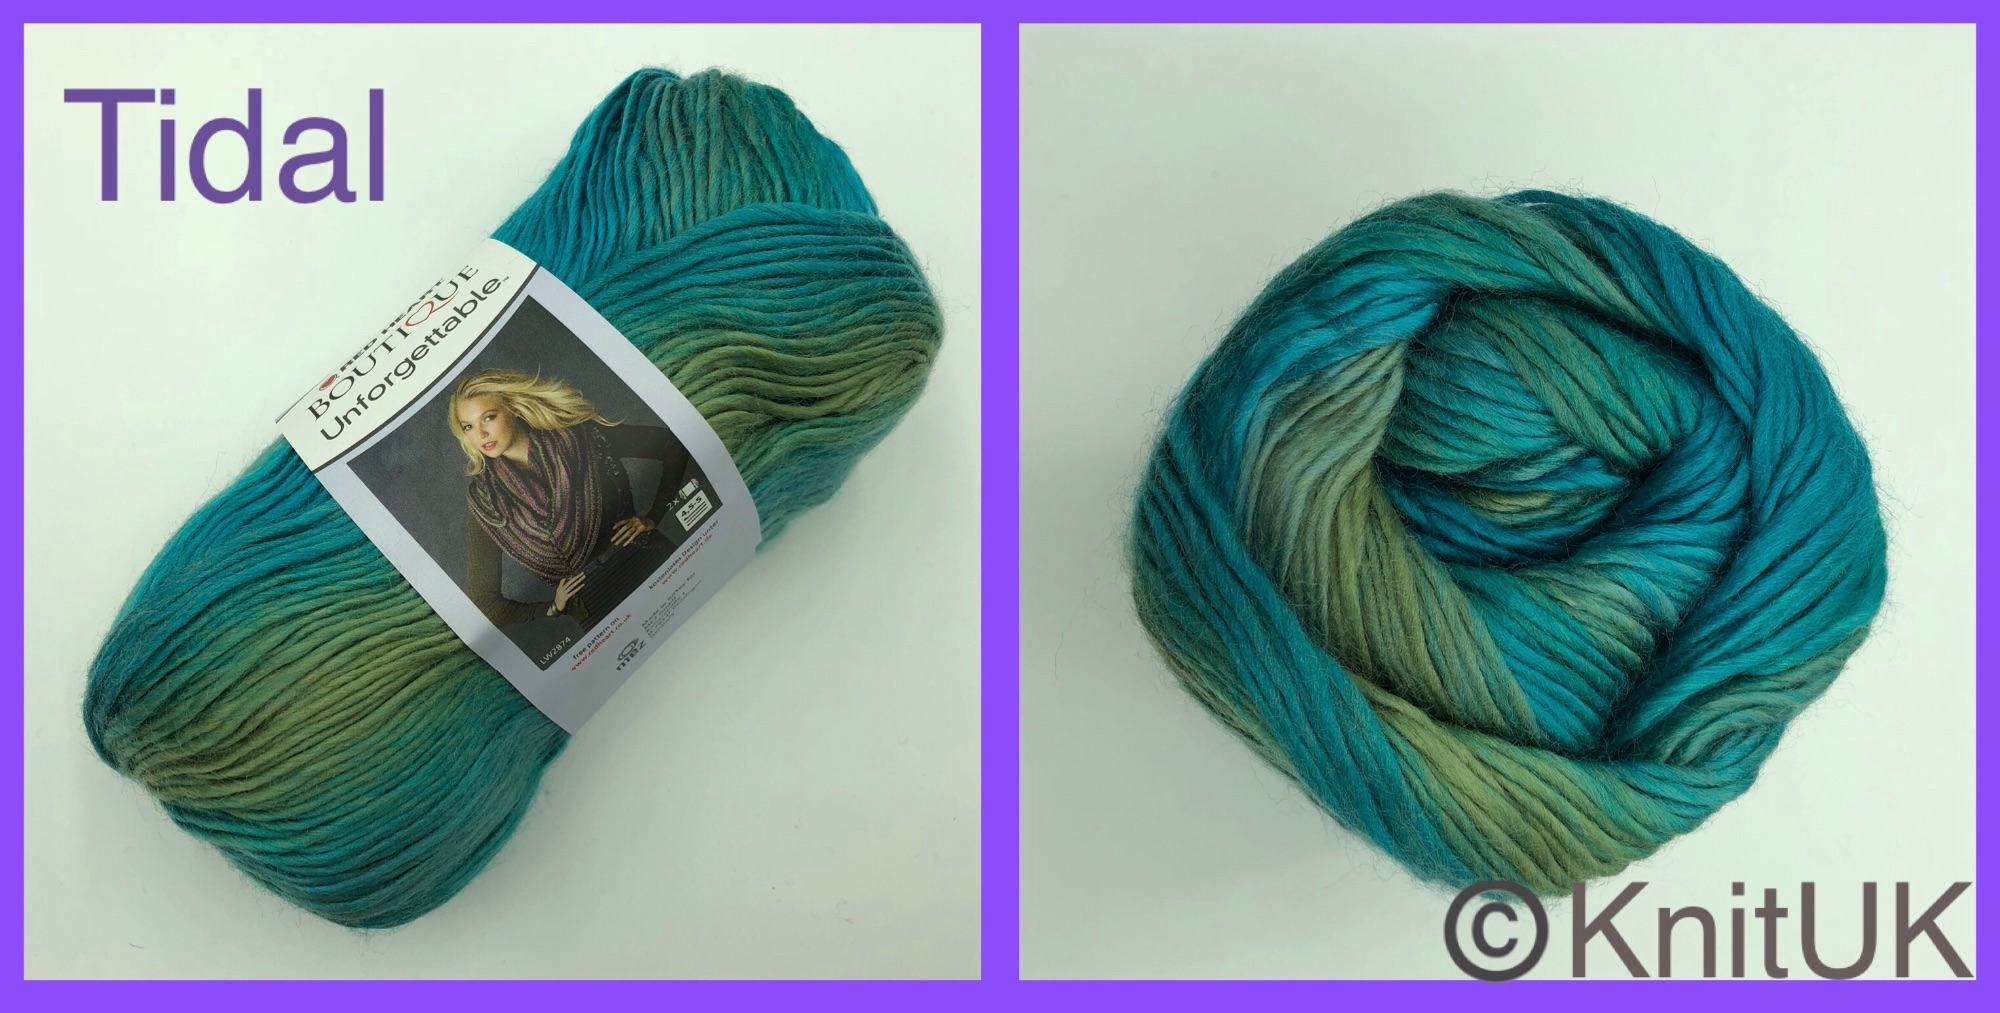 Red Heart boutique unforgettable yarn tidal colour